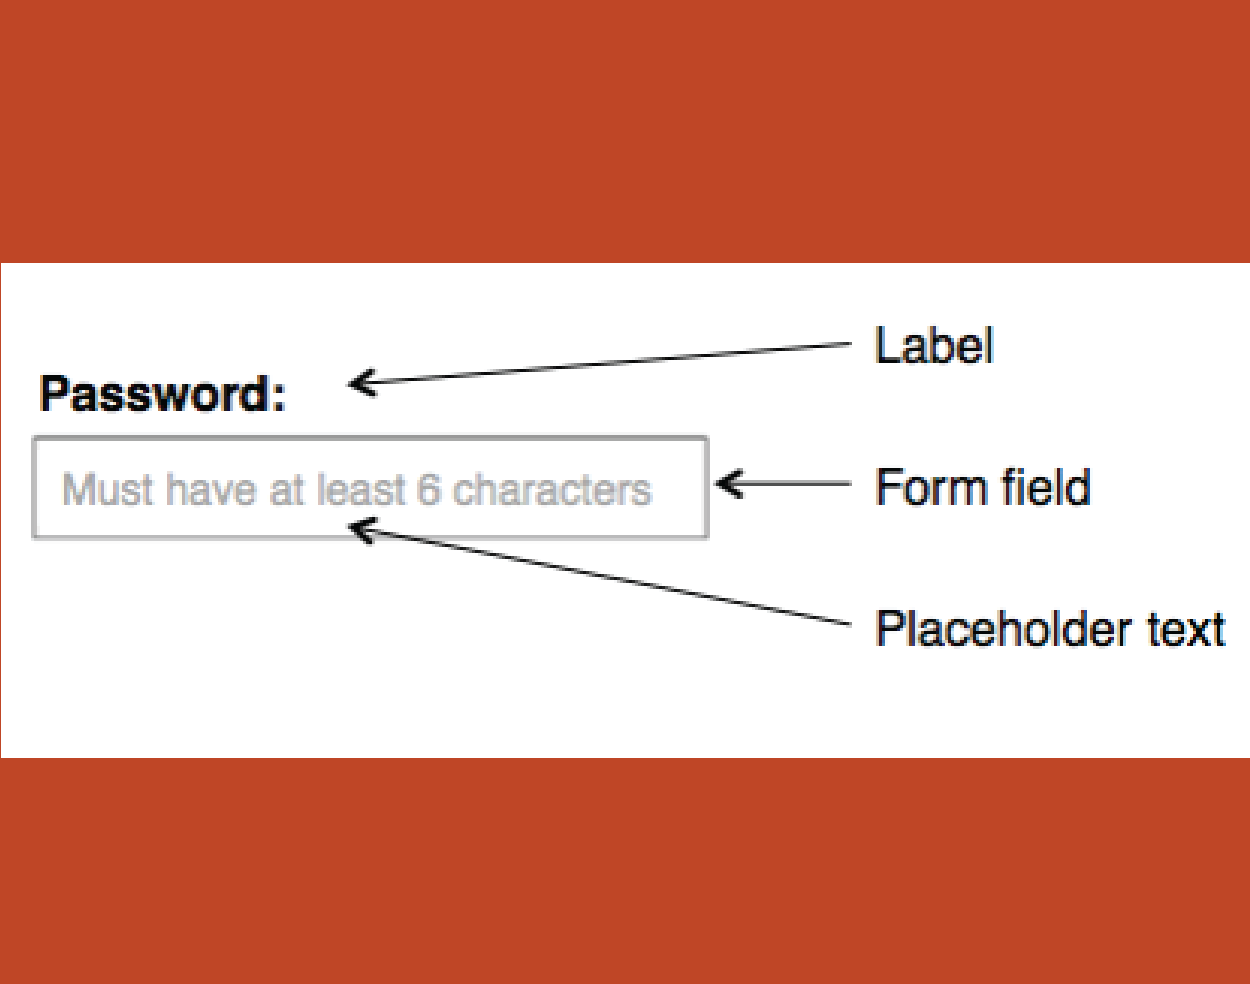 Placeholders in Form Fields Are Harmful